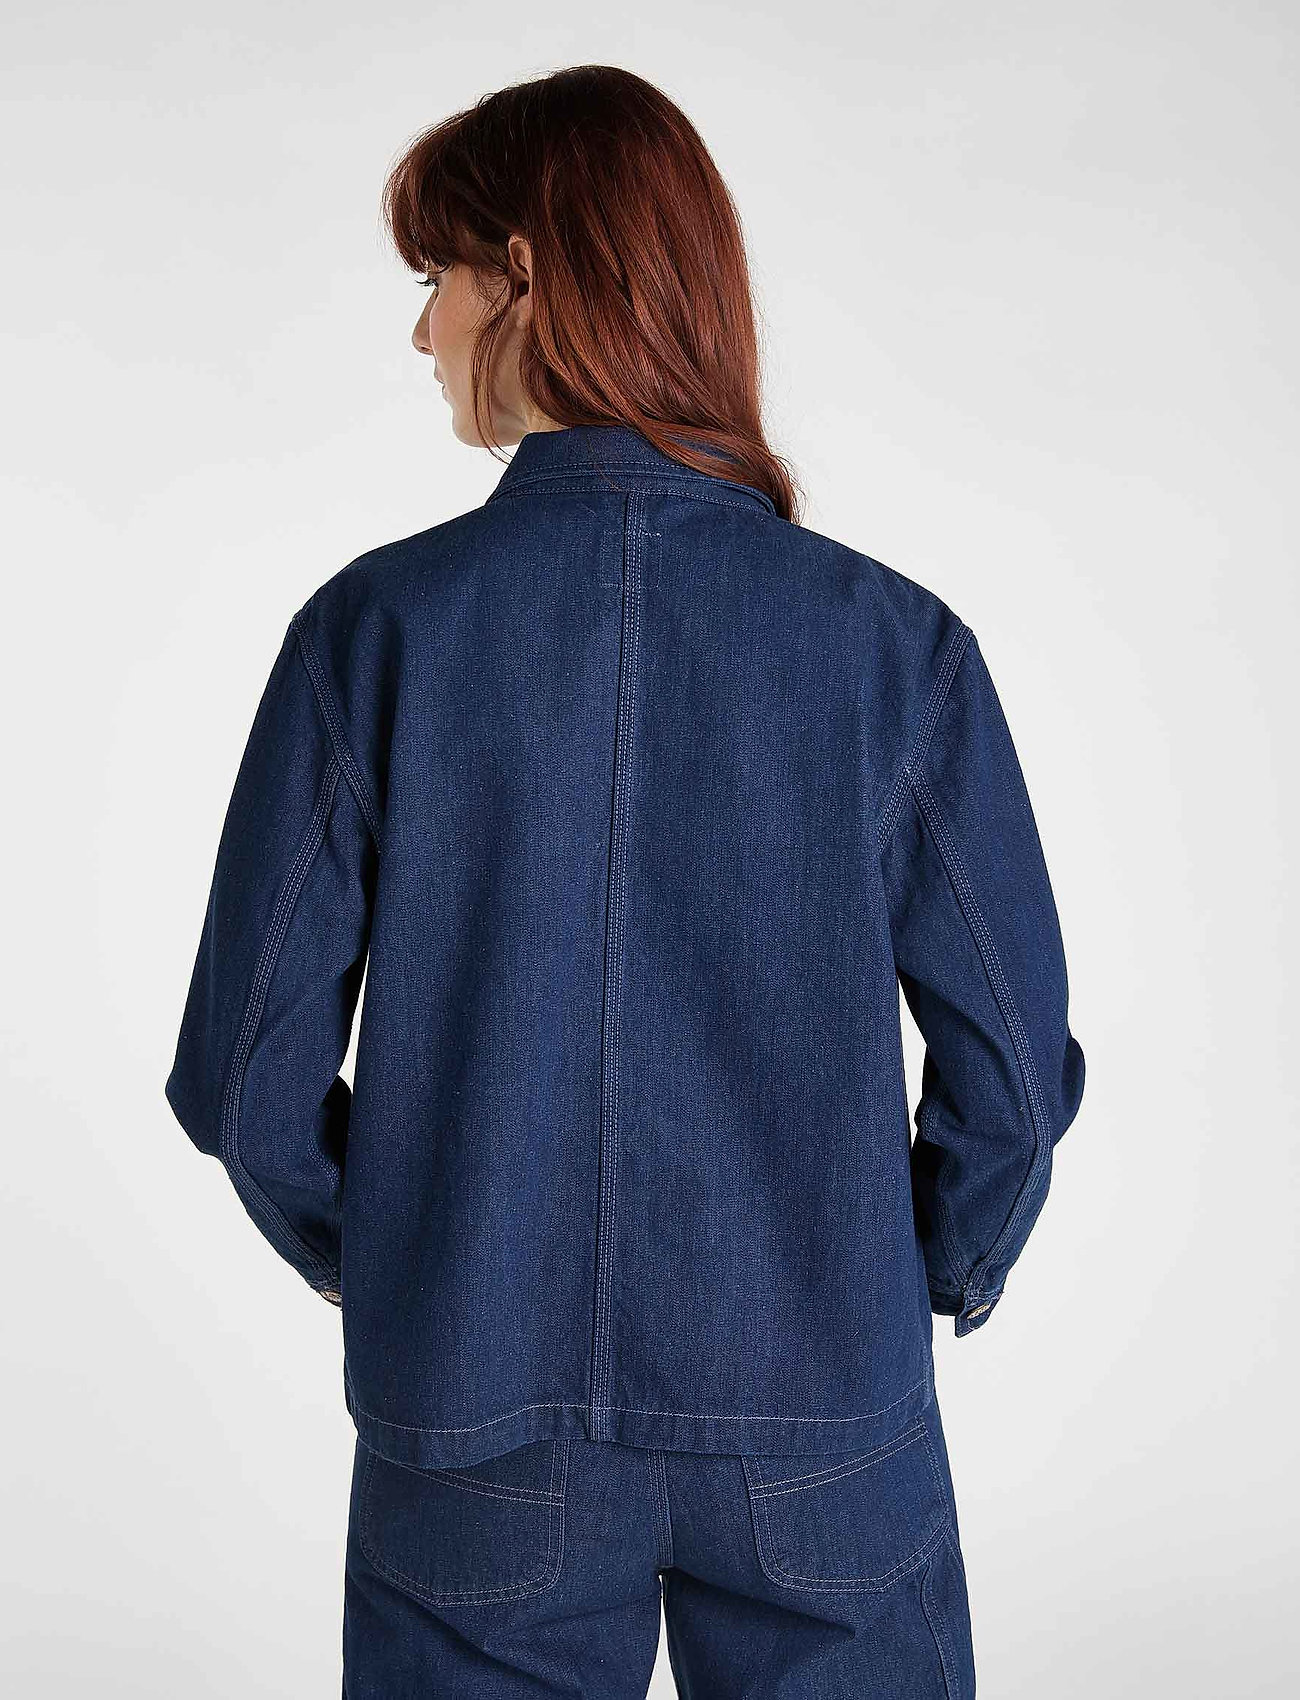 Lee Jeans Worker Chore Jacket - Jackor & Kappor